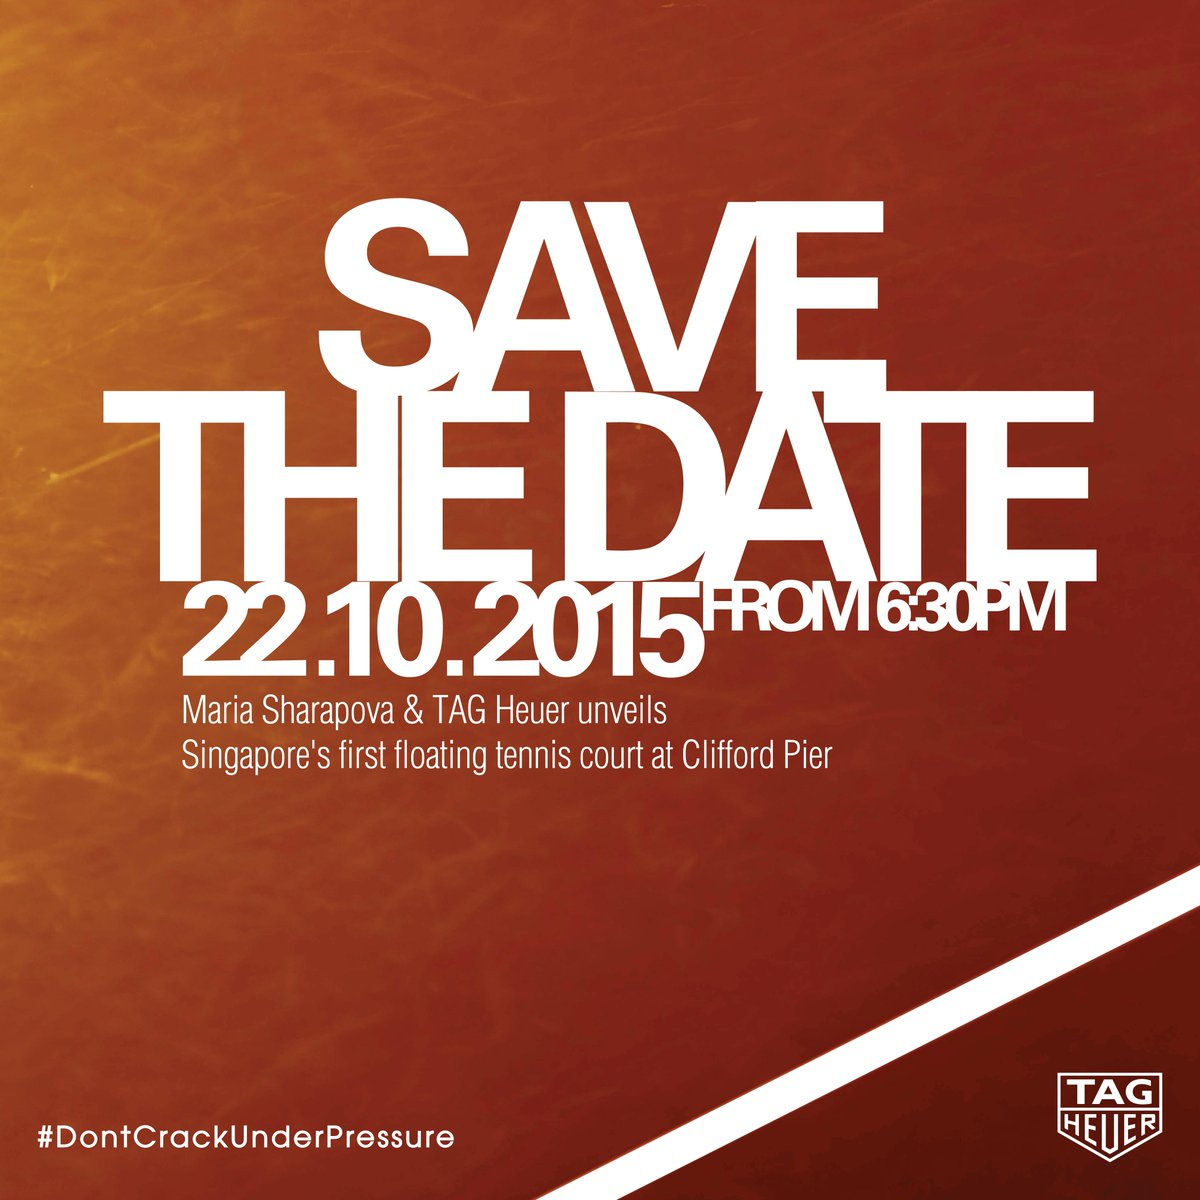 #SavetheDate for Singapore's 1st floating tennis platform by @TAGHeuer Oct. 22nd @ Clifford Pier! https://t.co/QGVzkEOHB7